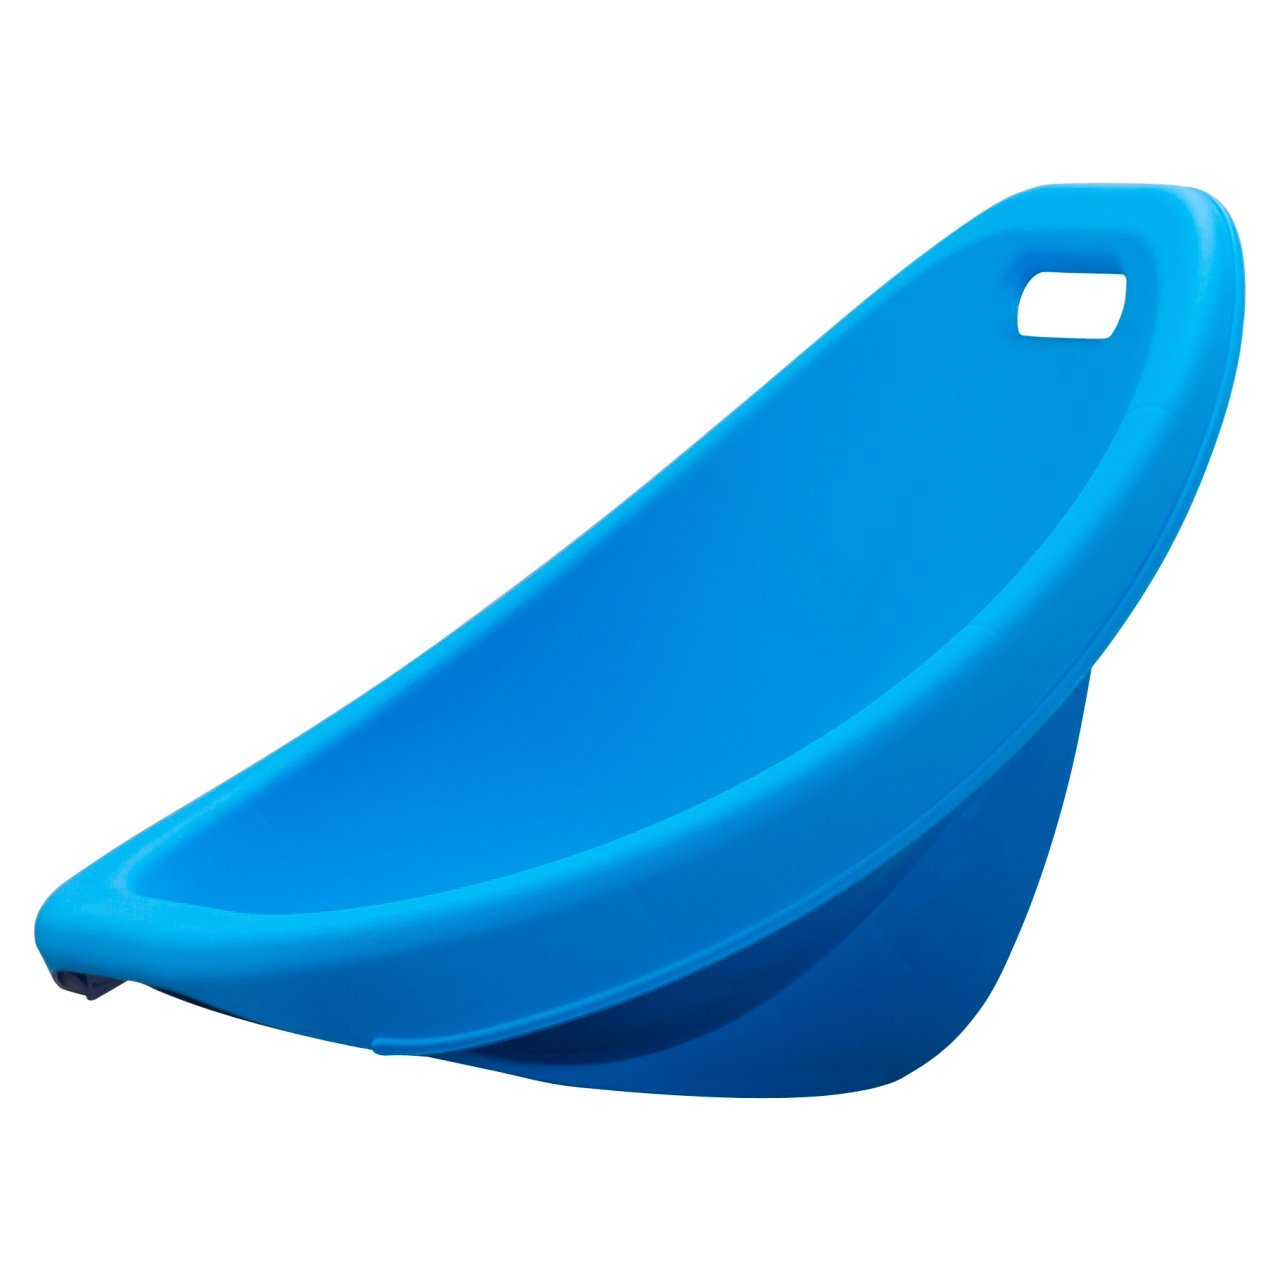 Merveilleux Amazon.com: American Plastic Toys Scoop Rocker Chair (Pack Of 6) Kids  Childrens Chairs Includes Our Exclusive EBook: Kitchen U0026 Dining